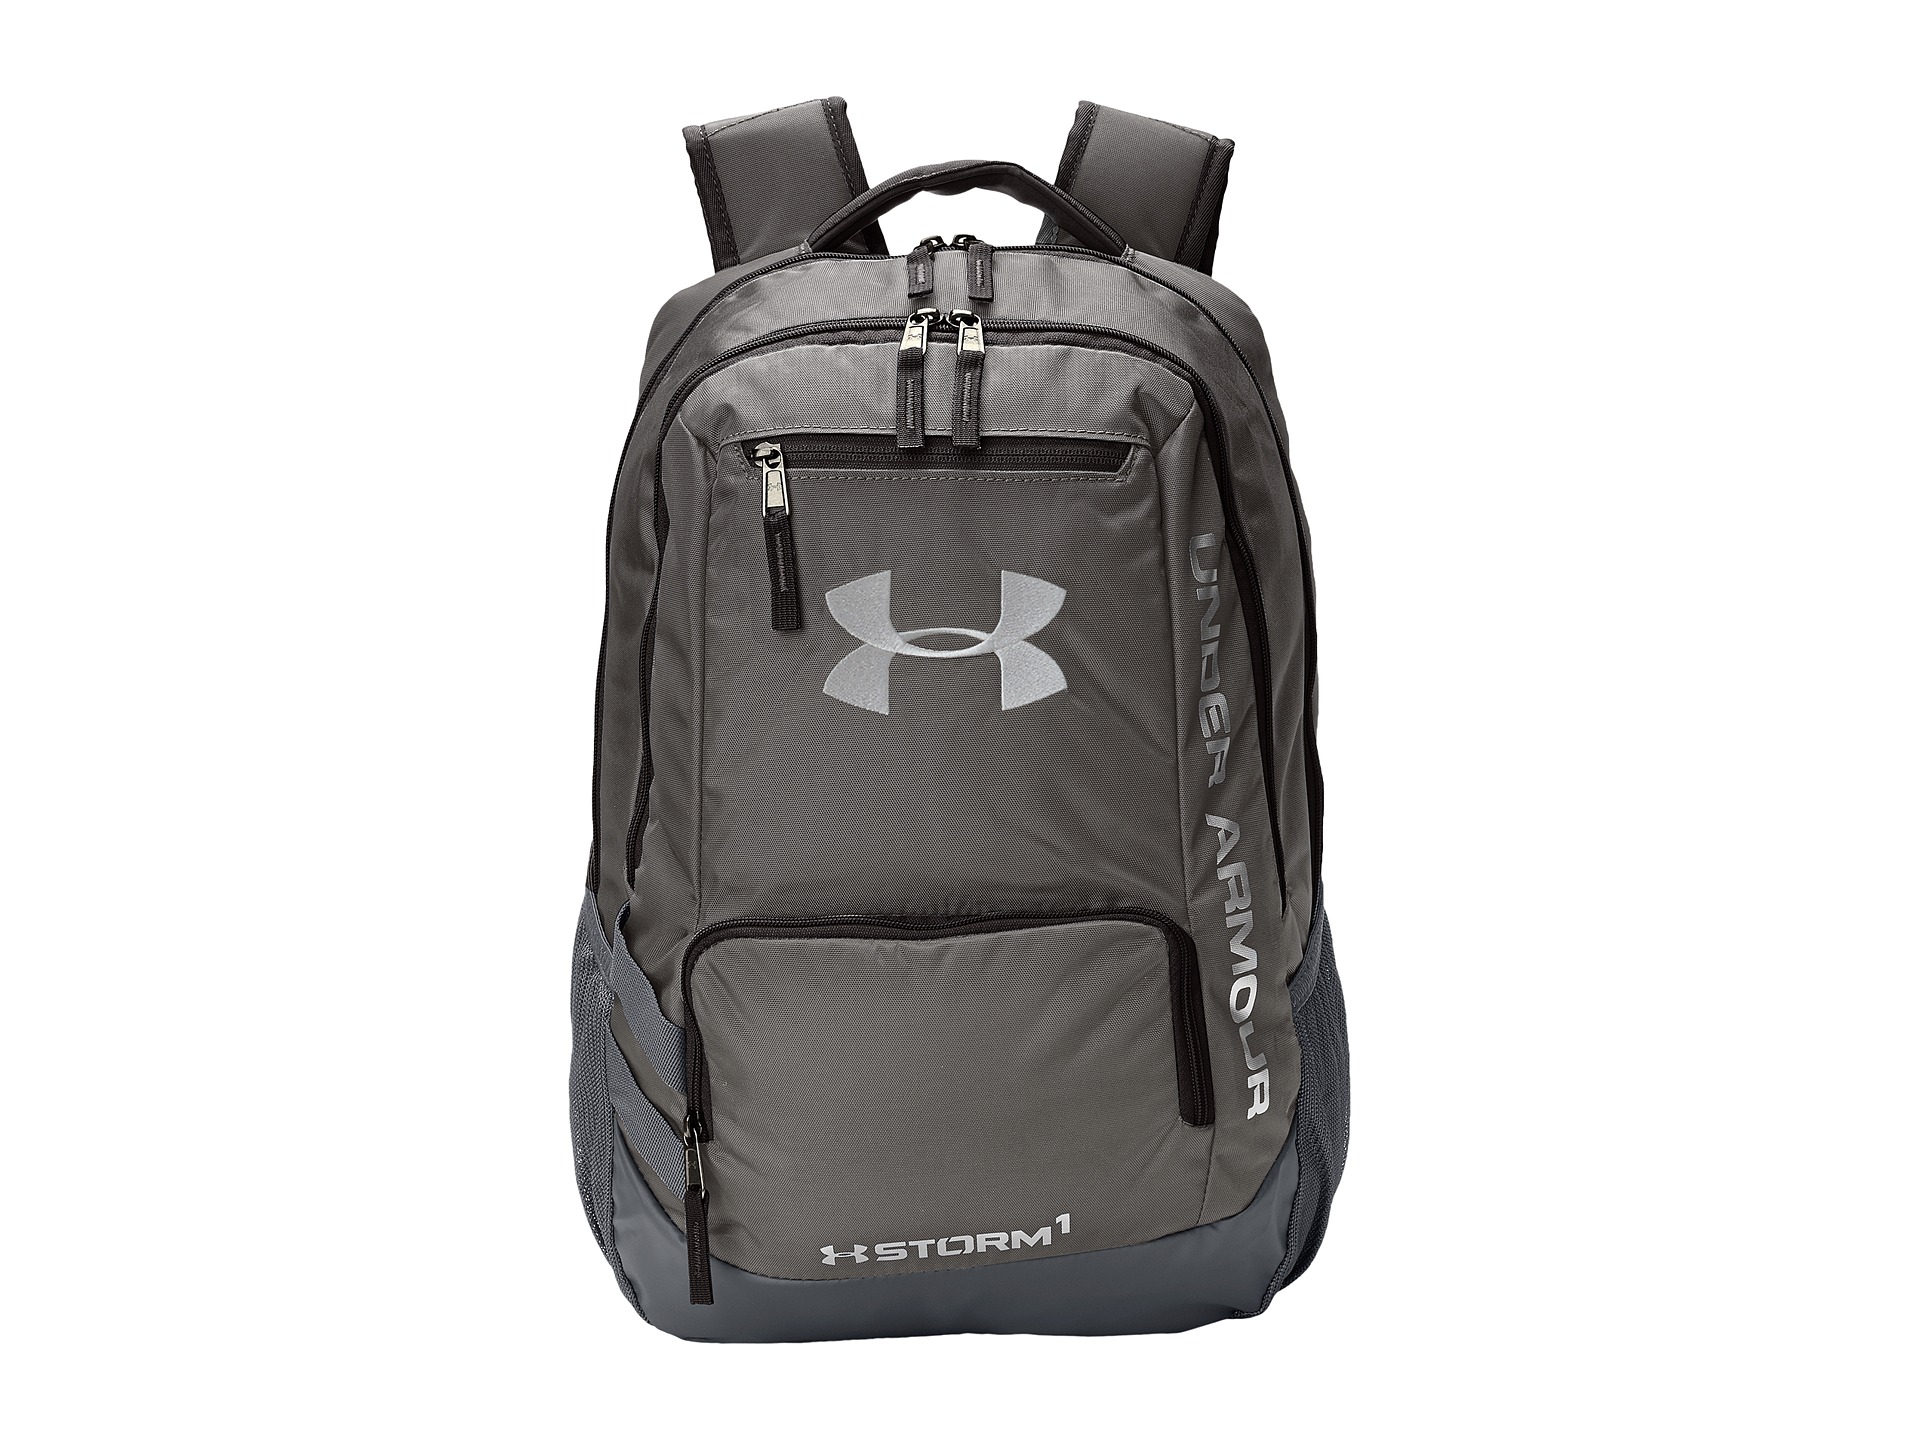 black under armor backpack cheap   OFF62% The Largest Catalog Discounts 966ef5db19ce1